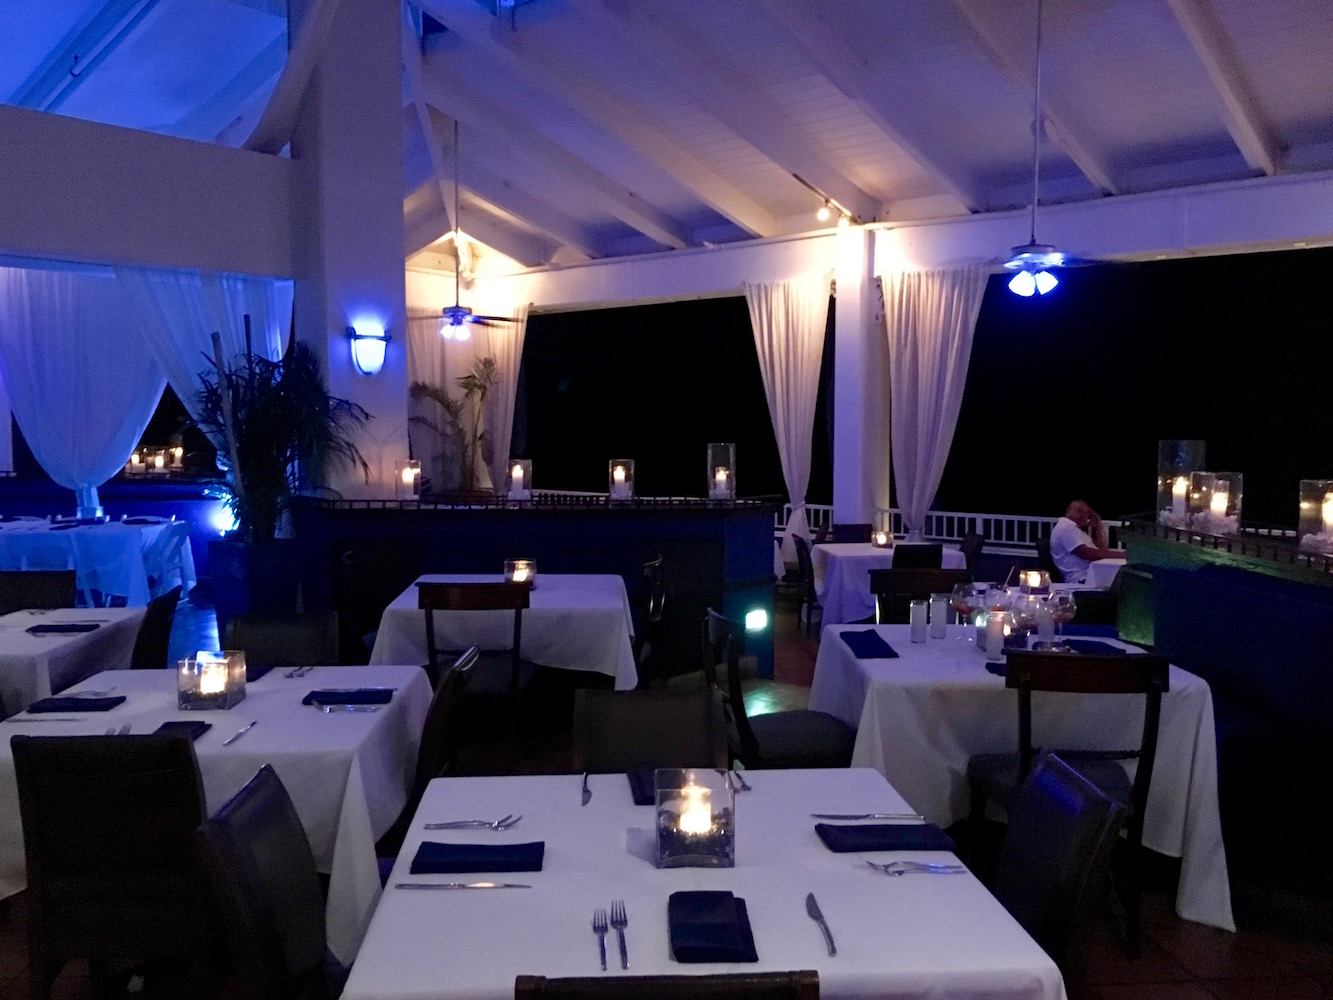 Havana Blue, an independent restaurant located on the grounds of the Marriott, served hands down the best food we had on St. Thomas. It is not to be missed!